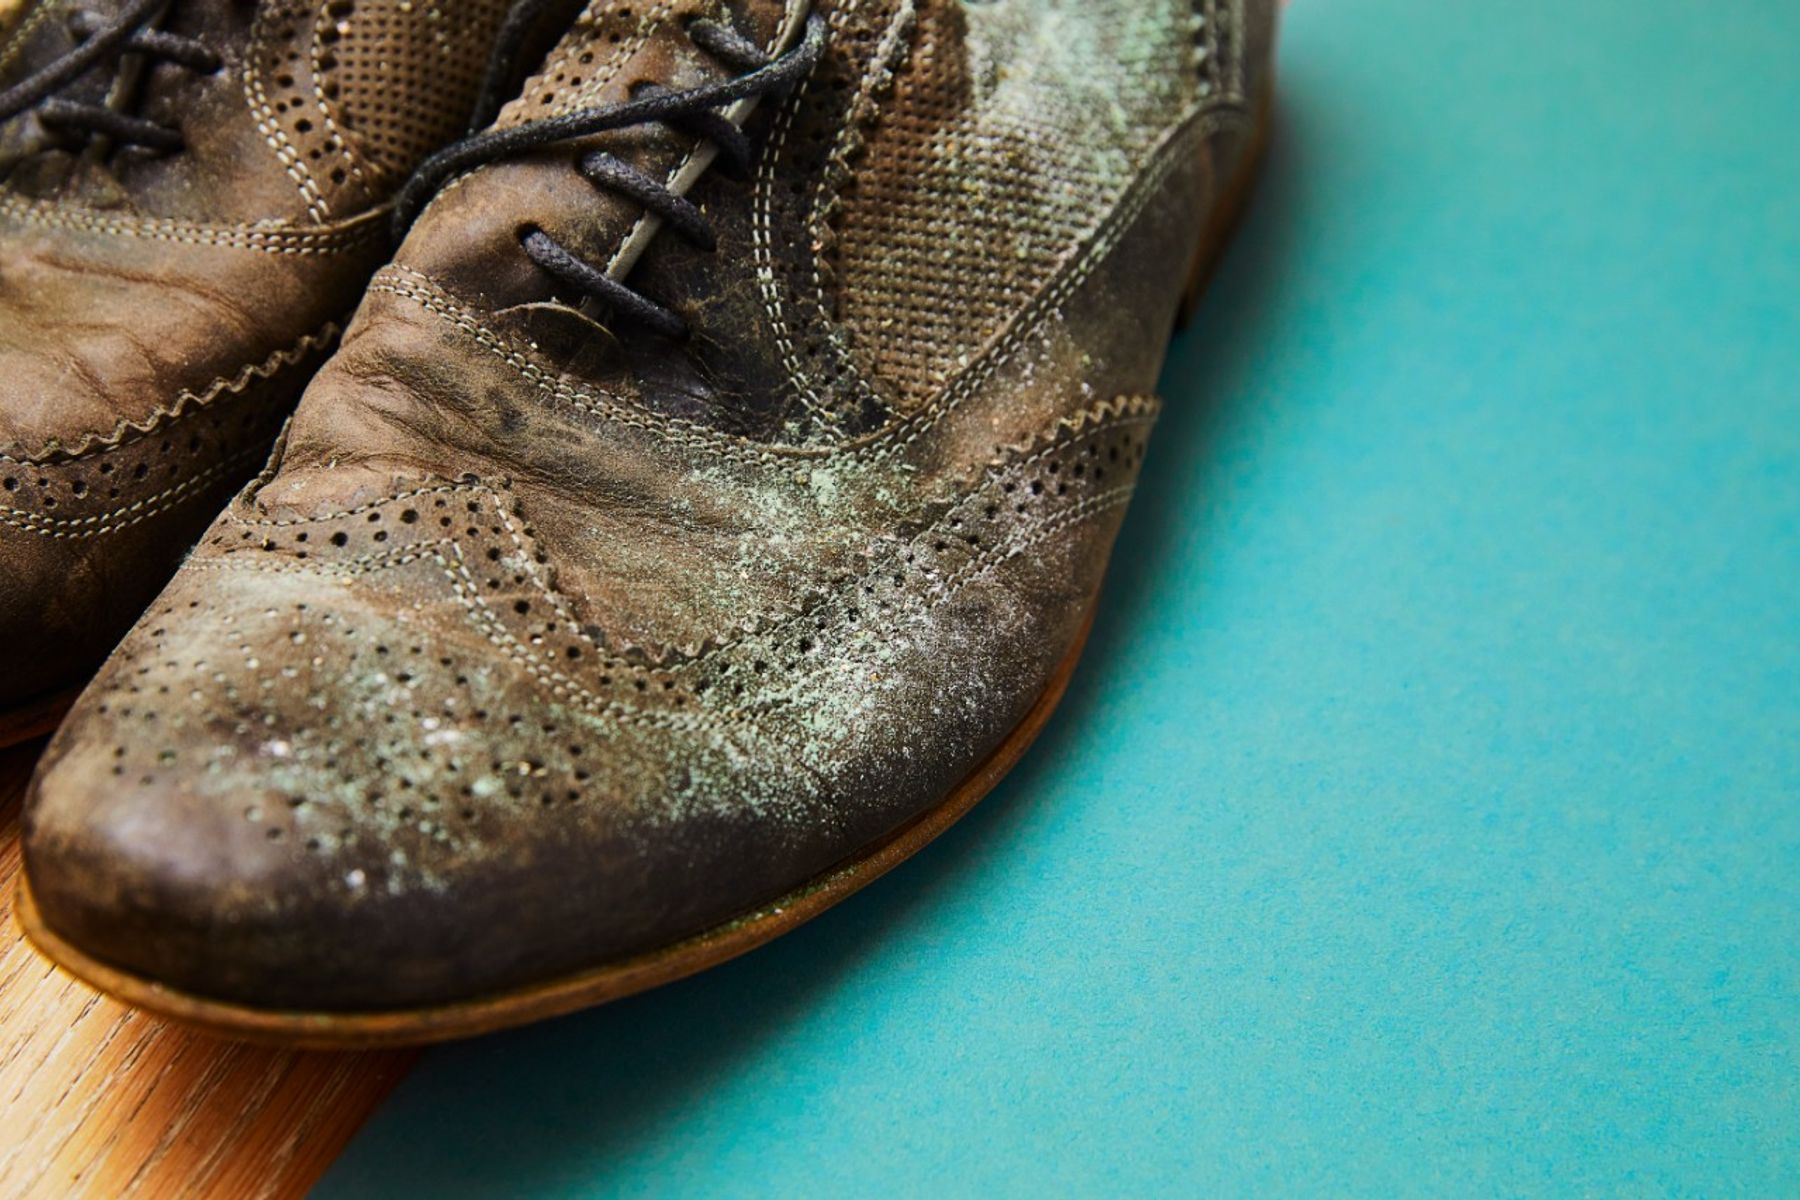 Pair of brown shoes growing mould on the leather against a blue background, causing a damp smell in the house